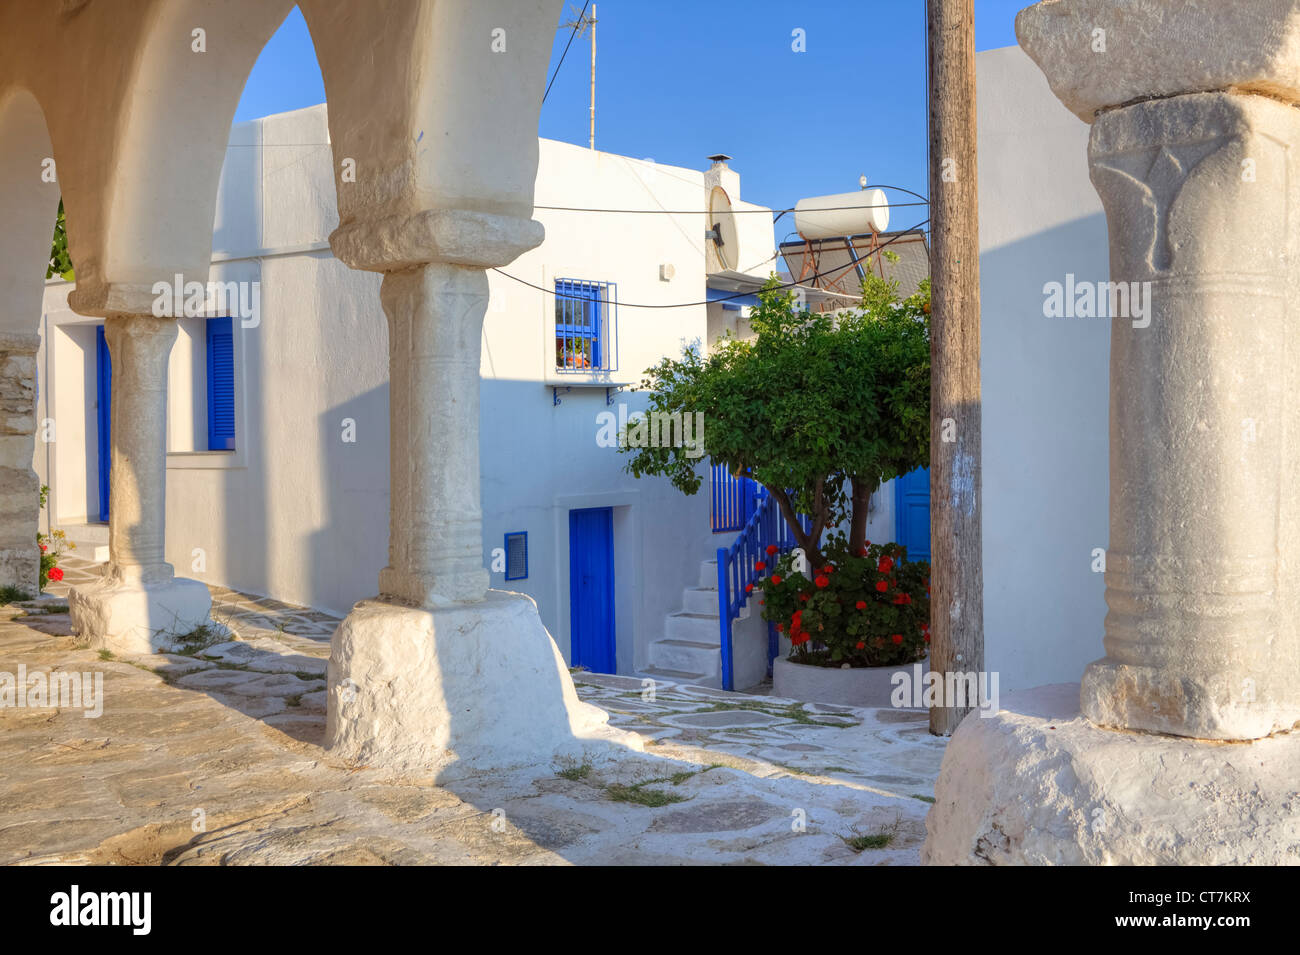 View through the pillars of the church of Agios Konstantinos on the Castro district in Paros, Cyclades, Greece - Stock Image